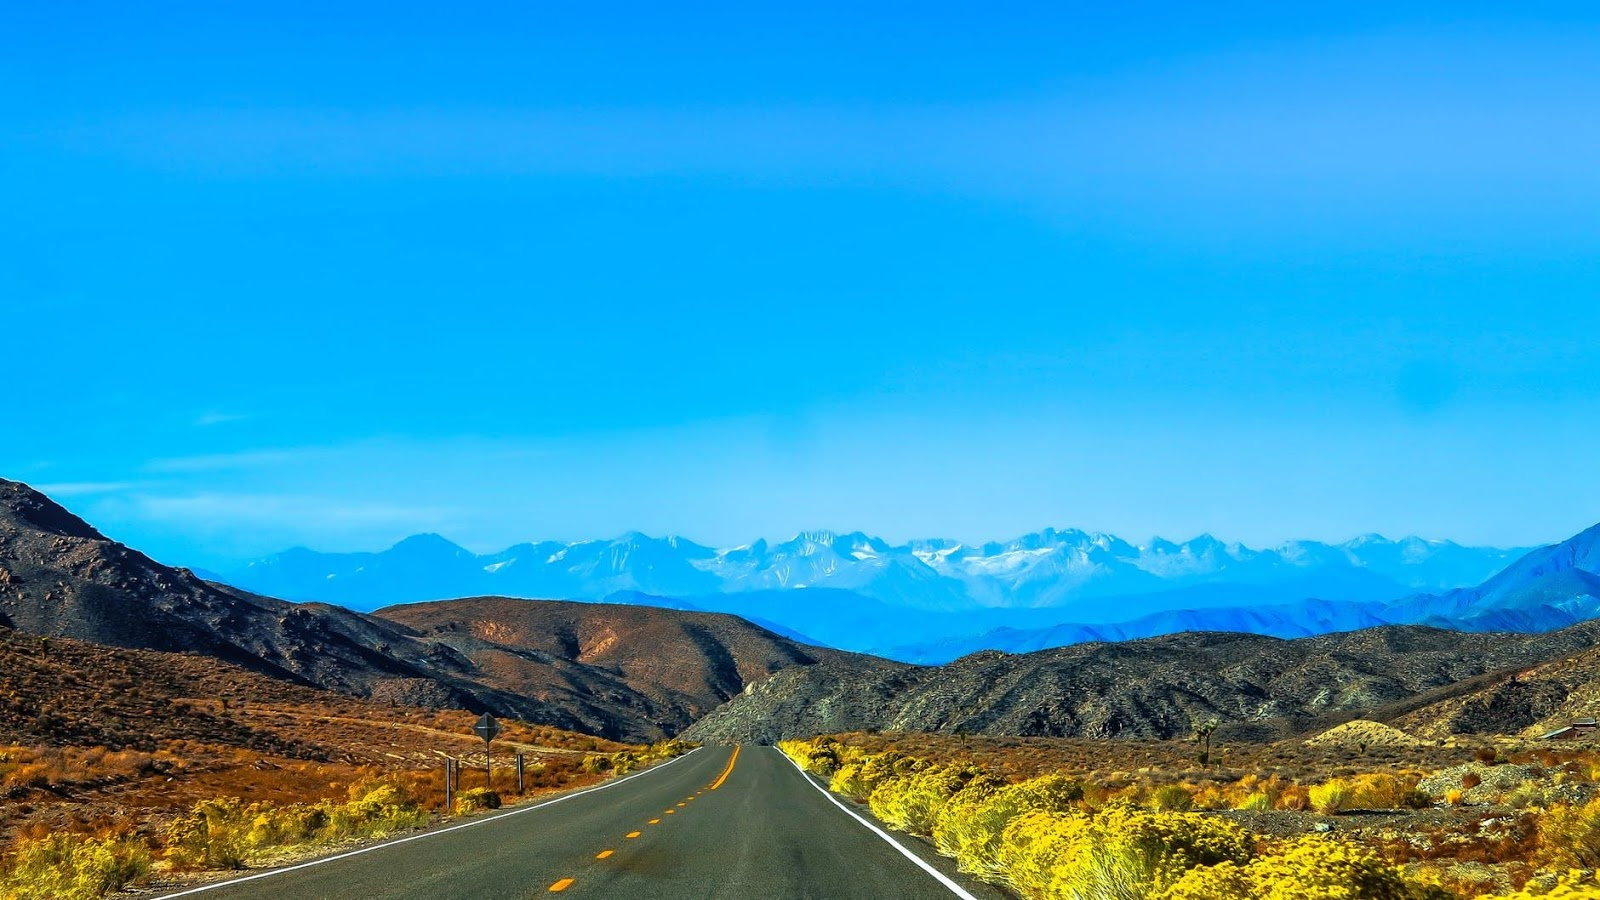 7 Great Tips for Surviving a Road Trip